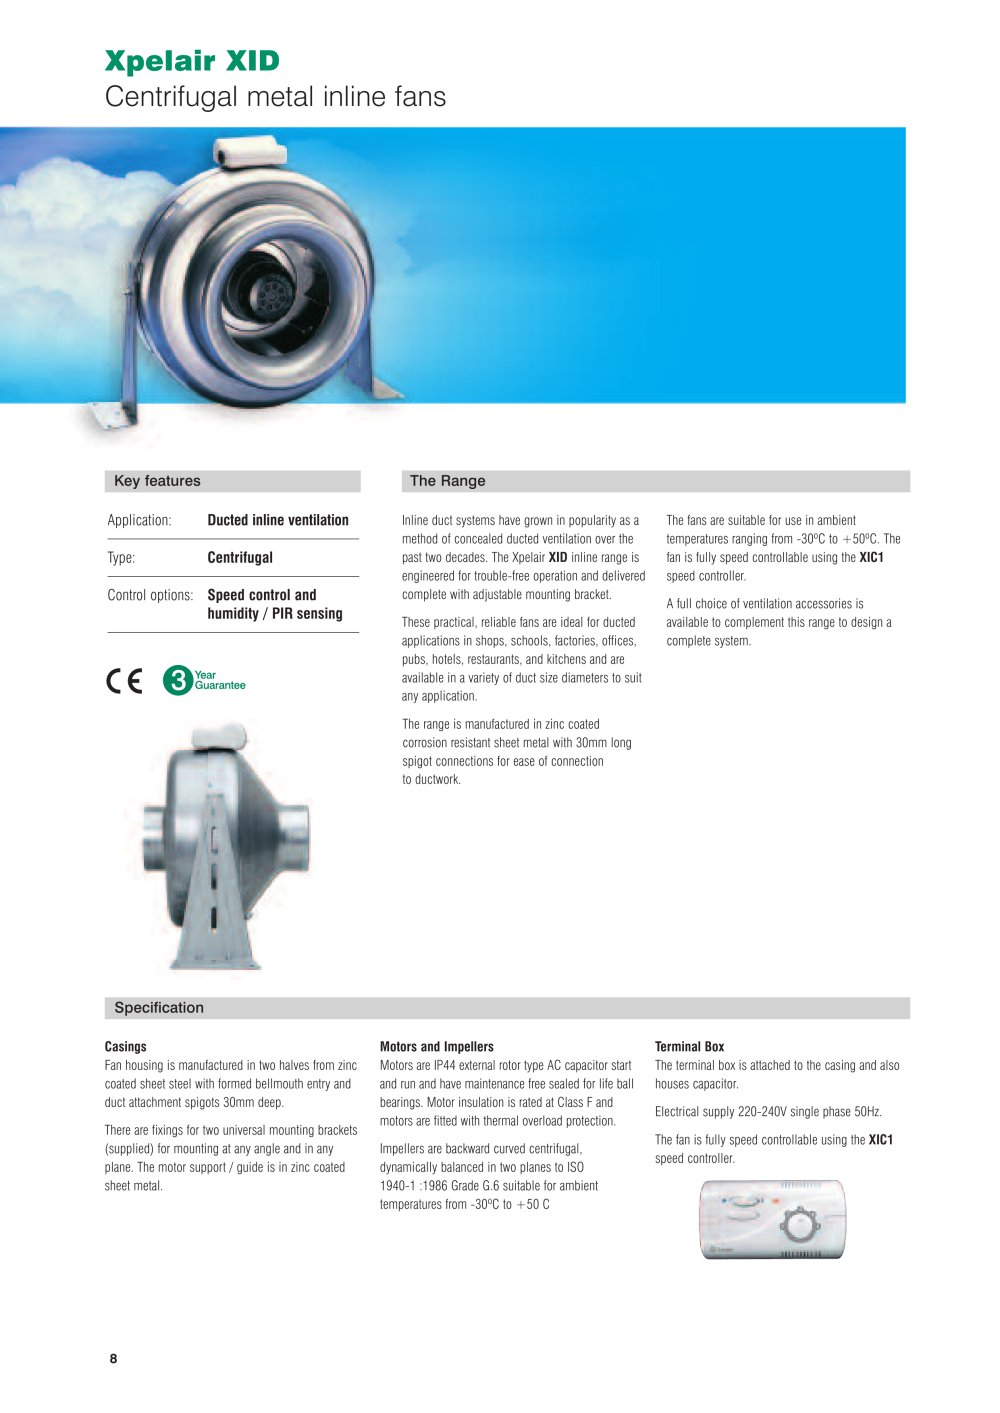 medium resolution of xpelair xid centrifugal metal inline fans 1 84 pages